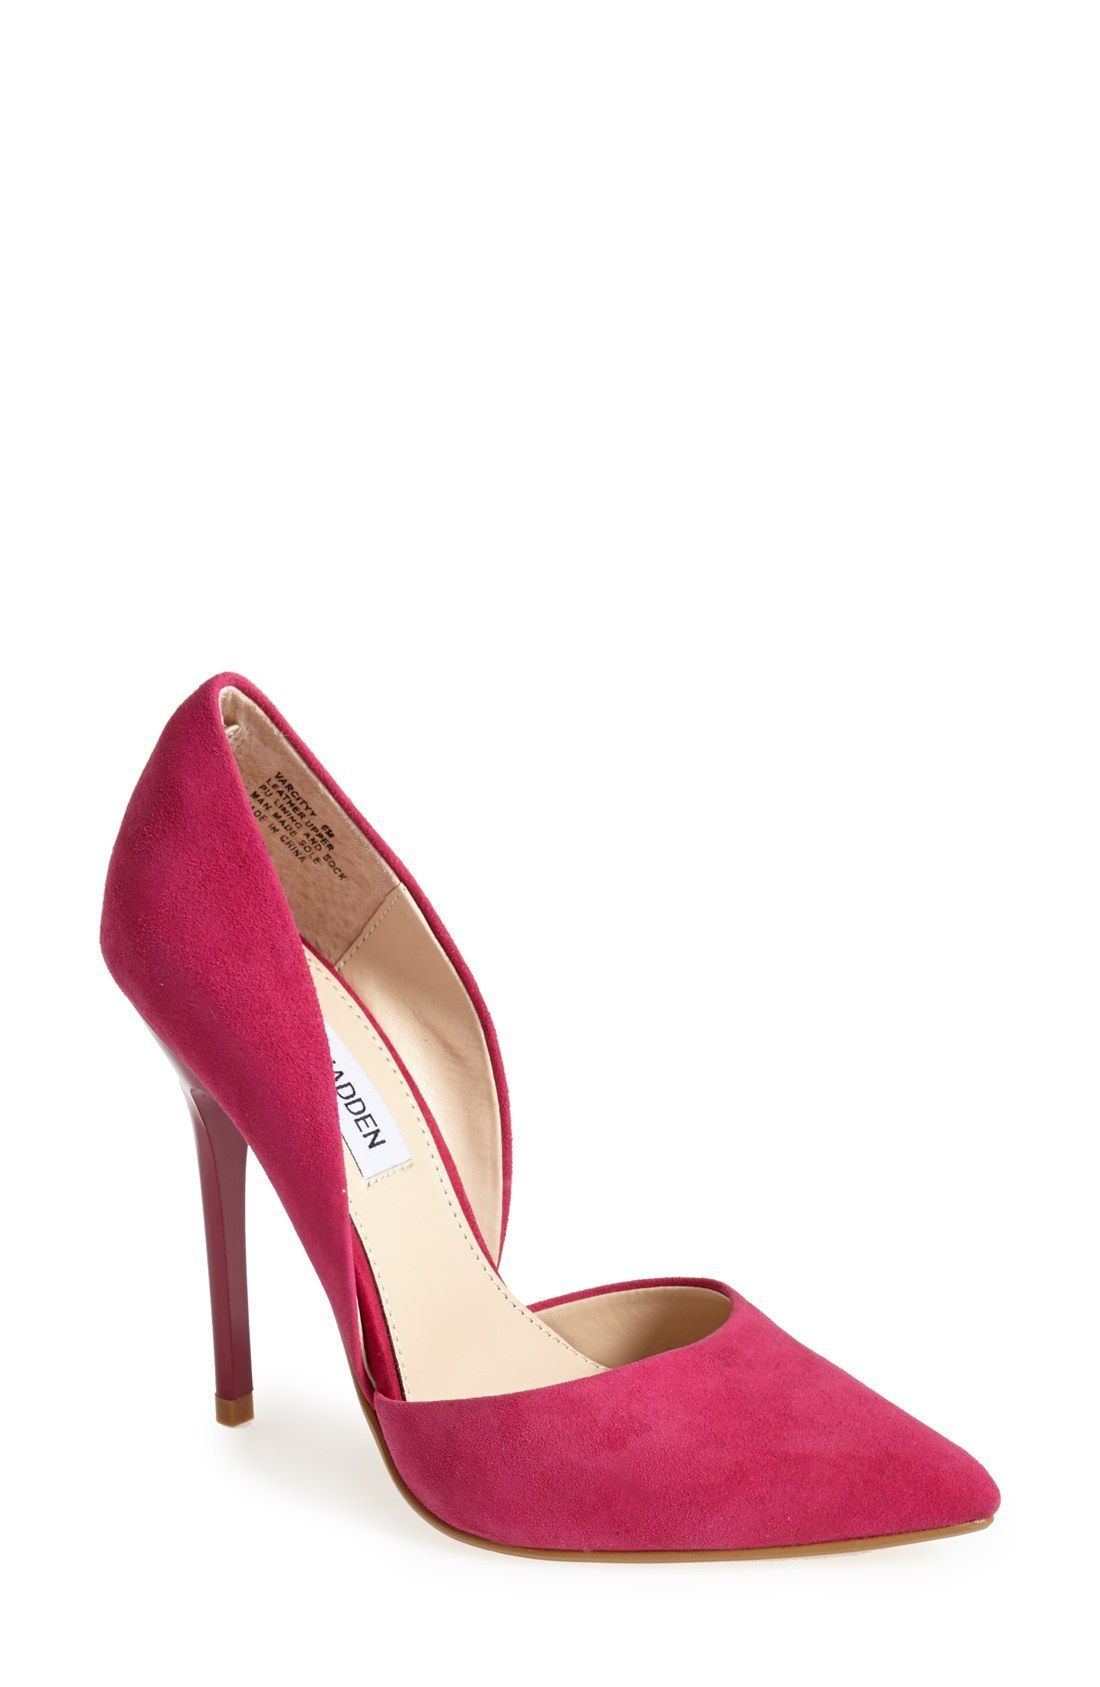 2dd1b55237f These pink Steve Madden pumps are perfect for a ladies night out ...